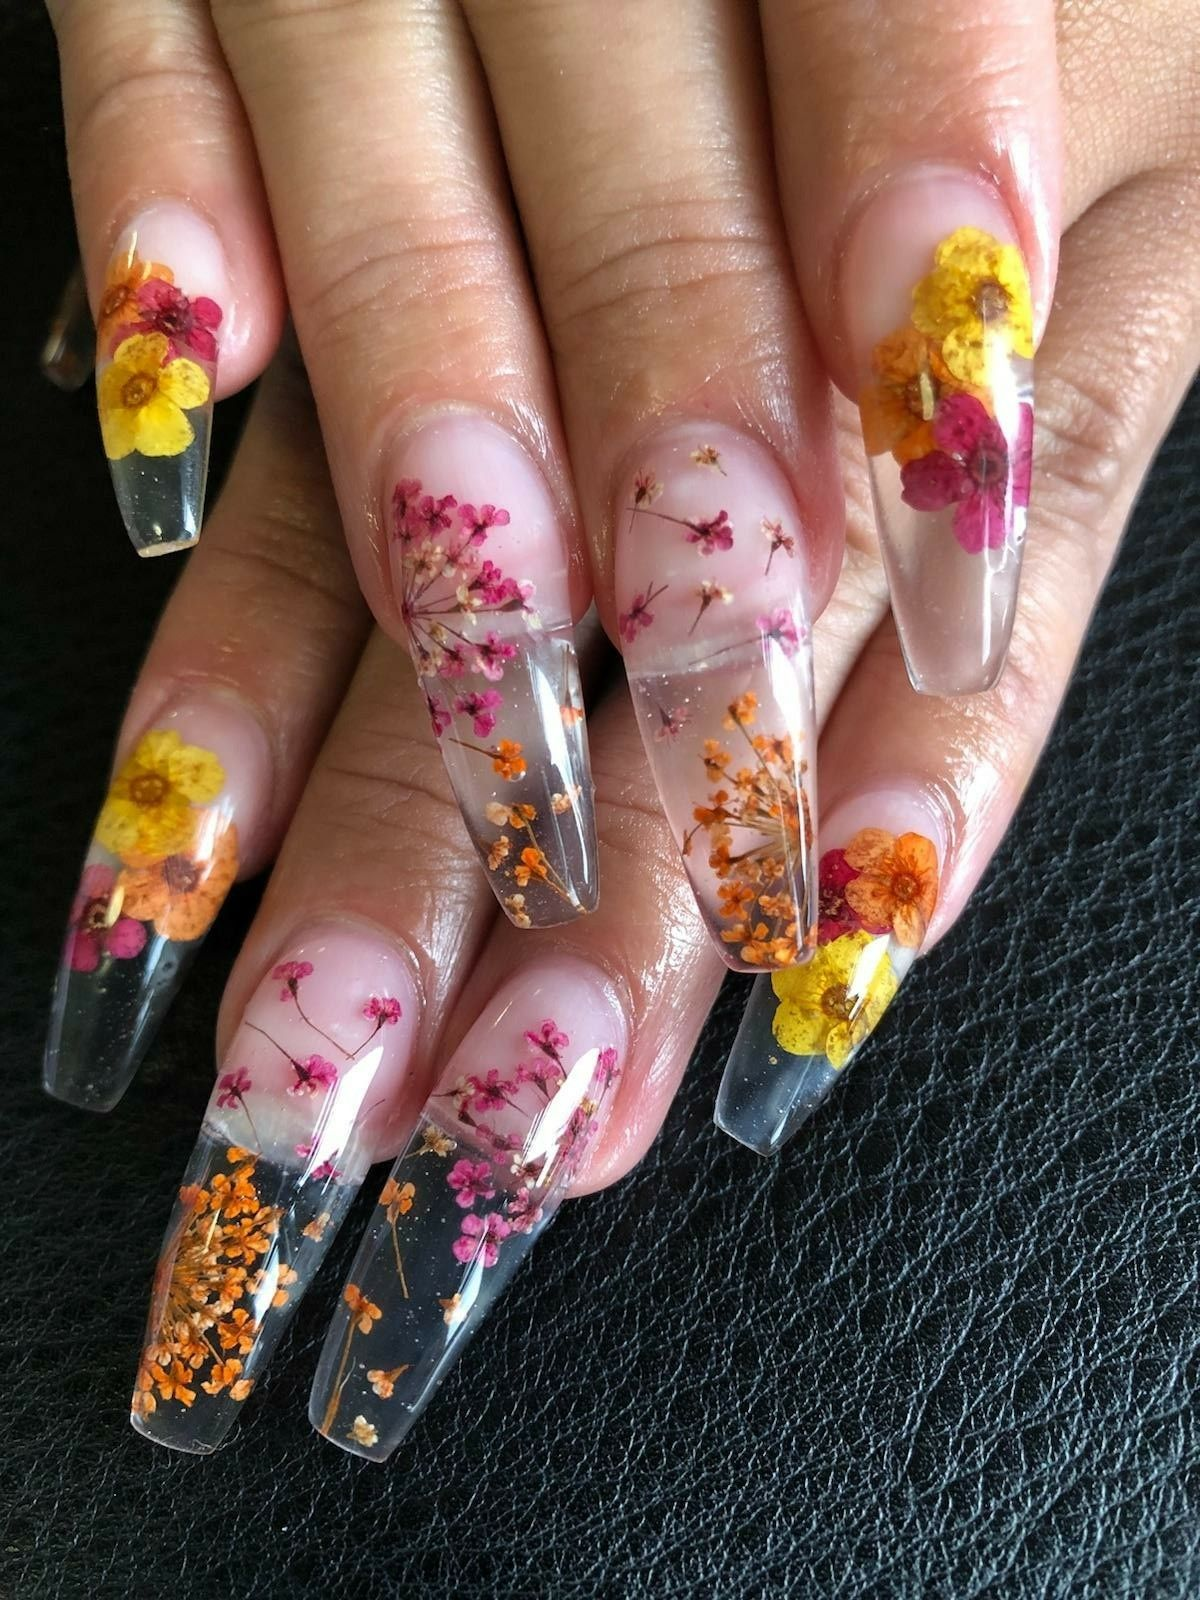 dried flower acrylic nails